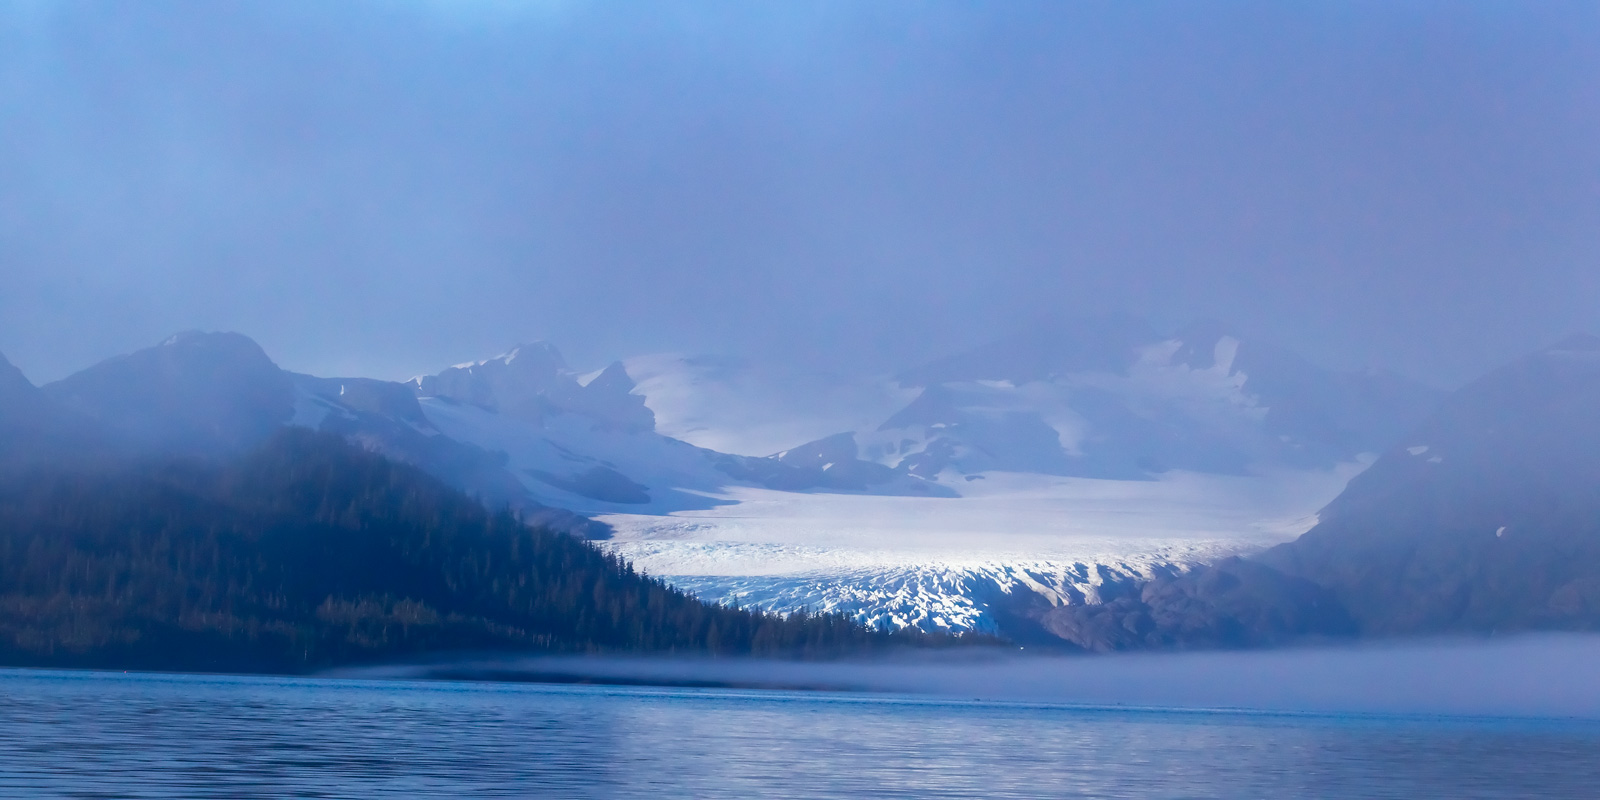 A Limited Edition, Fine Art photograph of an impressive glacier in the morning fog on Prince William Sound in Alaska.  Available...